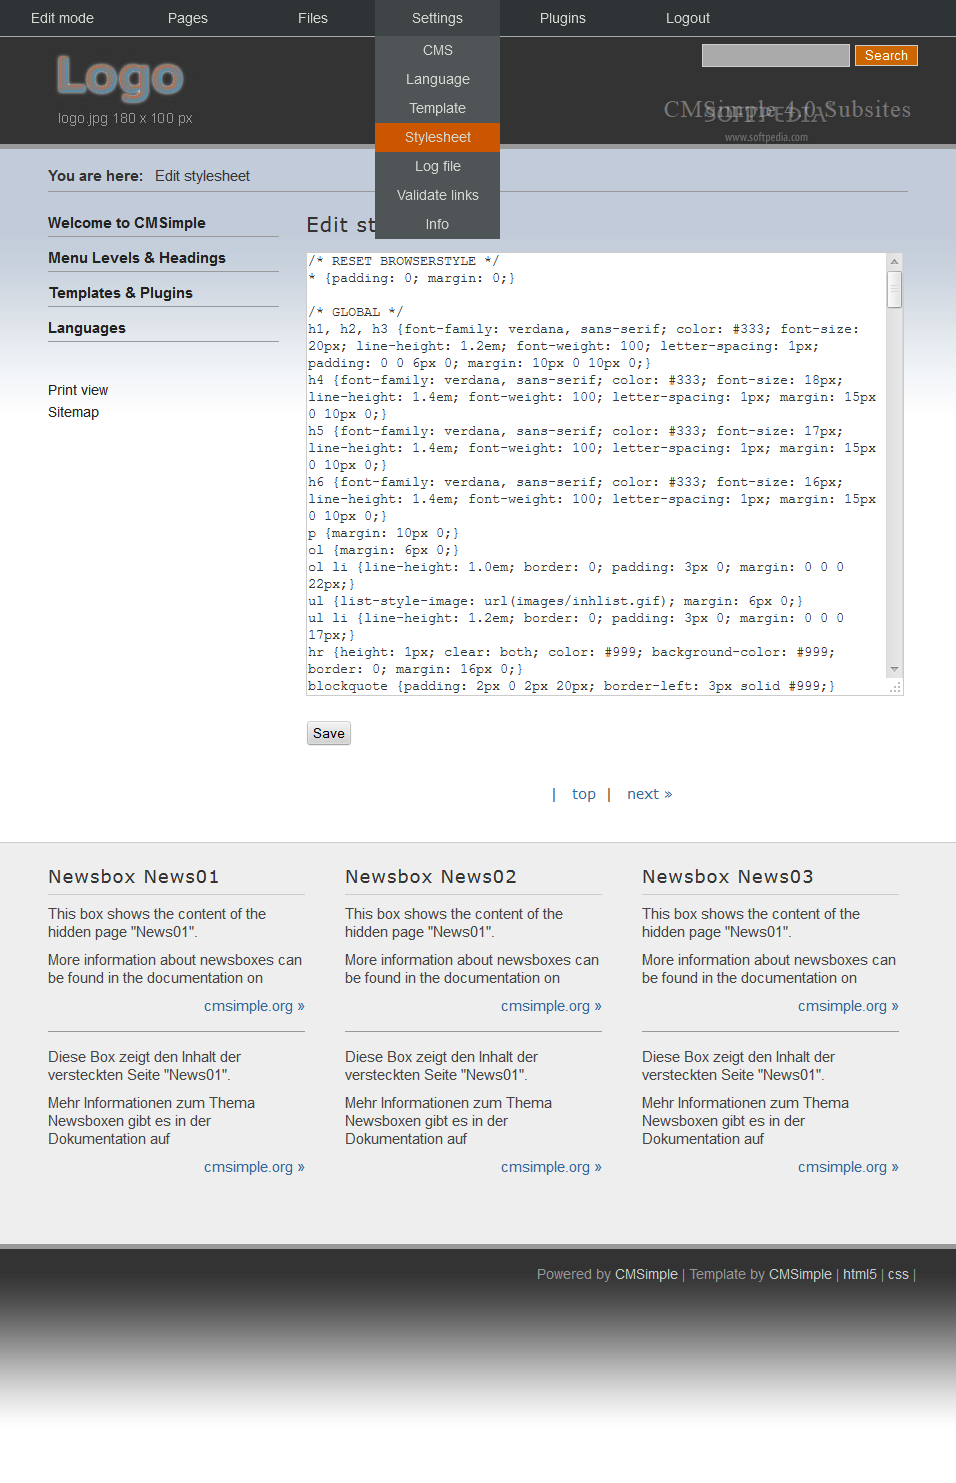 CMSimple - The webmaster can manage page templates and CSS styles